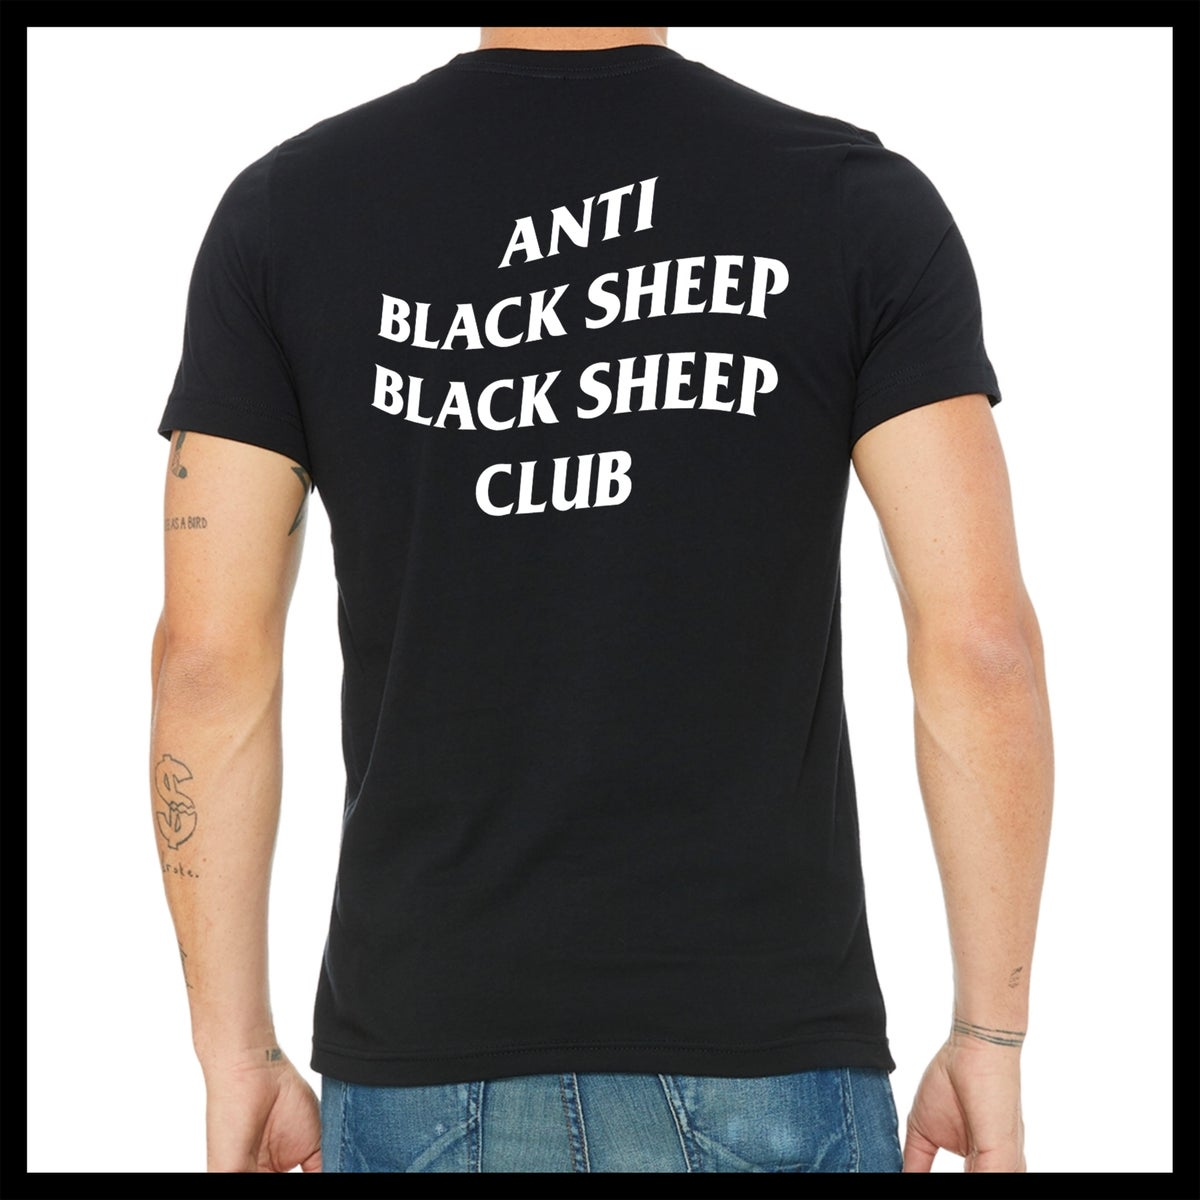 Anti Black Sheep Black Sheep Club T-Shirt